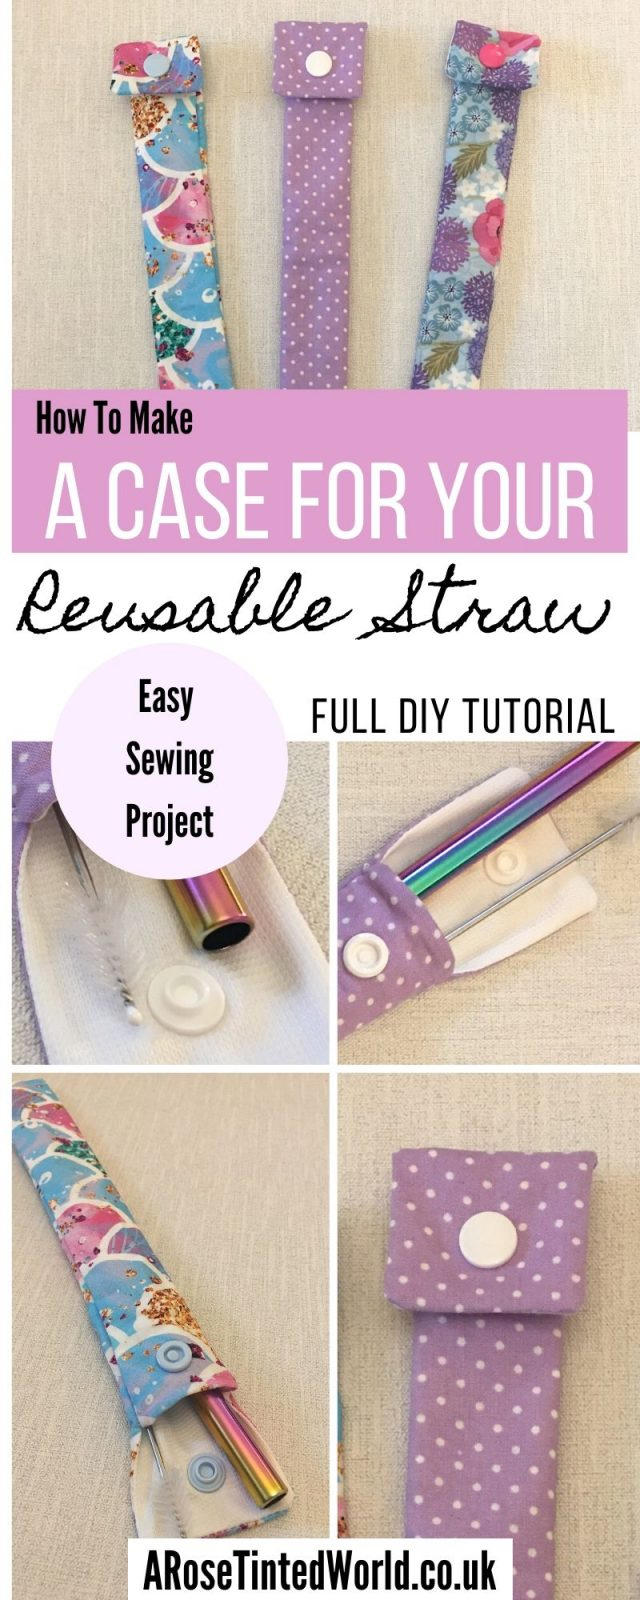 How To Make A Reusable Straw Case - DIY sewing tutorial. Sew your own holder for bamboo, stainless steel, & reusable straws. Live a more sustainable or zero waste lifestyle by using reusable straws when out and about. Stop using plastic straws. Easy sewing project suitable for beginner or novice sewers. Full guide given. Doubles as a toothbrush pouch! - full pictorial tutorial - great gift or to sell